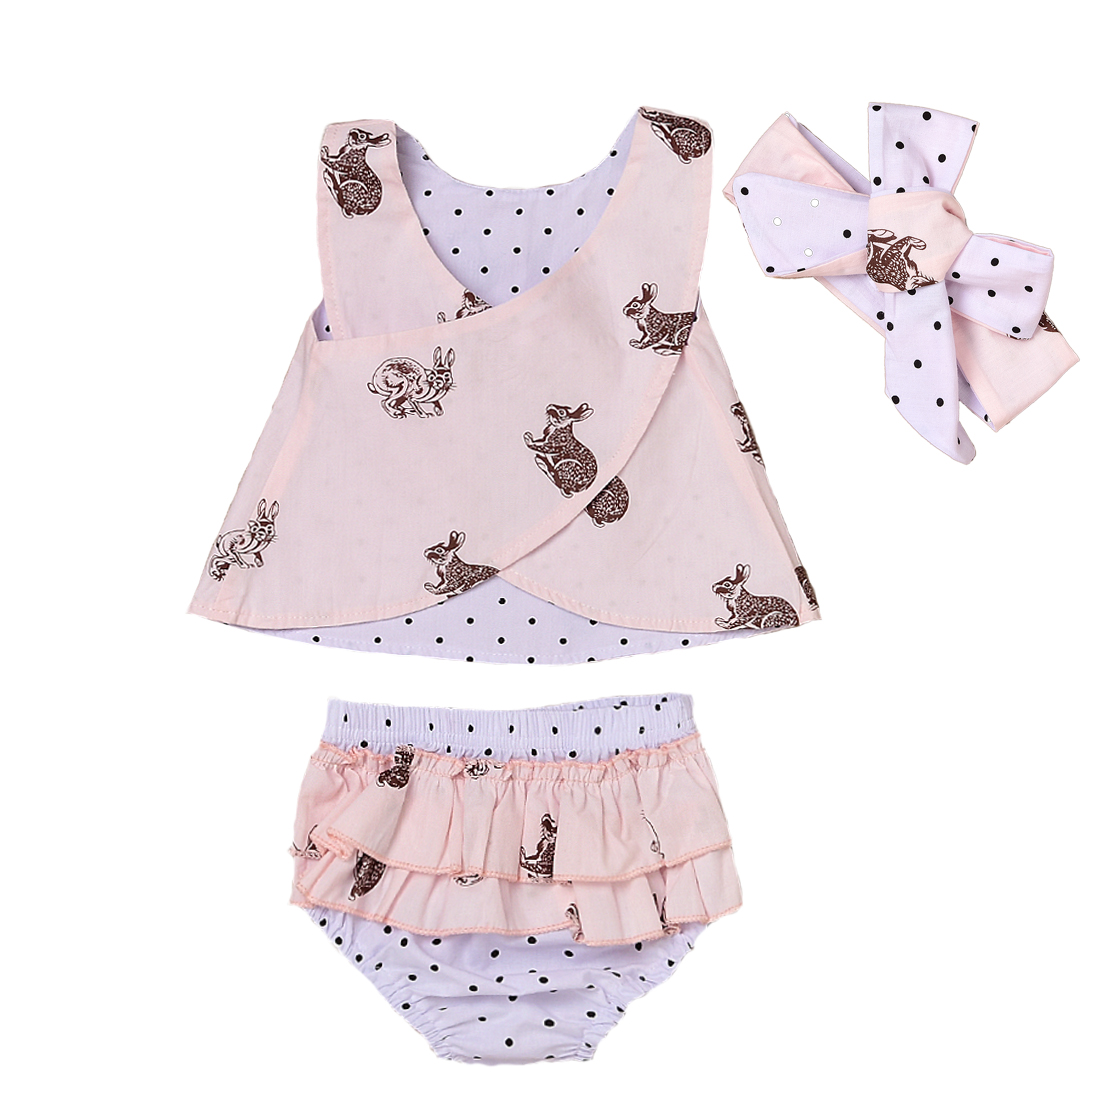 3PCS Toddler Baby Kids Girl Clothing Tops Summer Top Bunny Sleeveless Shorts Bottoms Headband Outfit Clothes Set Baby Girls princess toddler kids baby girl clothes sets sequins tops vest tutu skirts cute ball headband 3pcs outfits set girls clothing